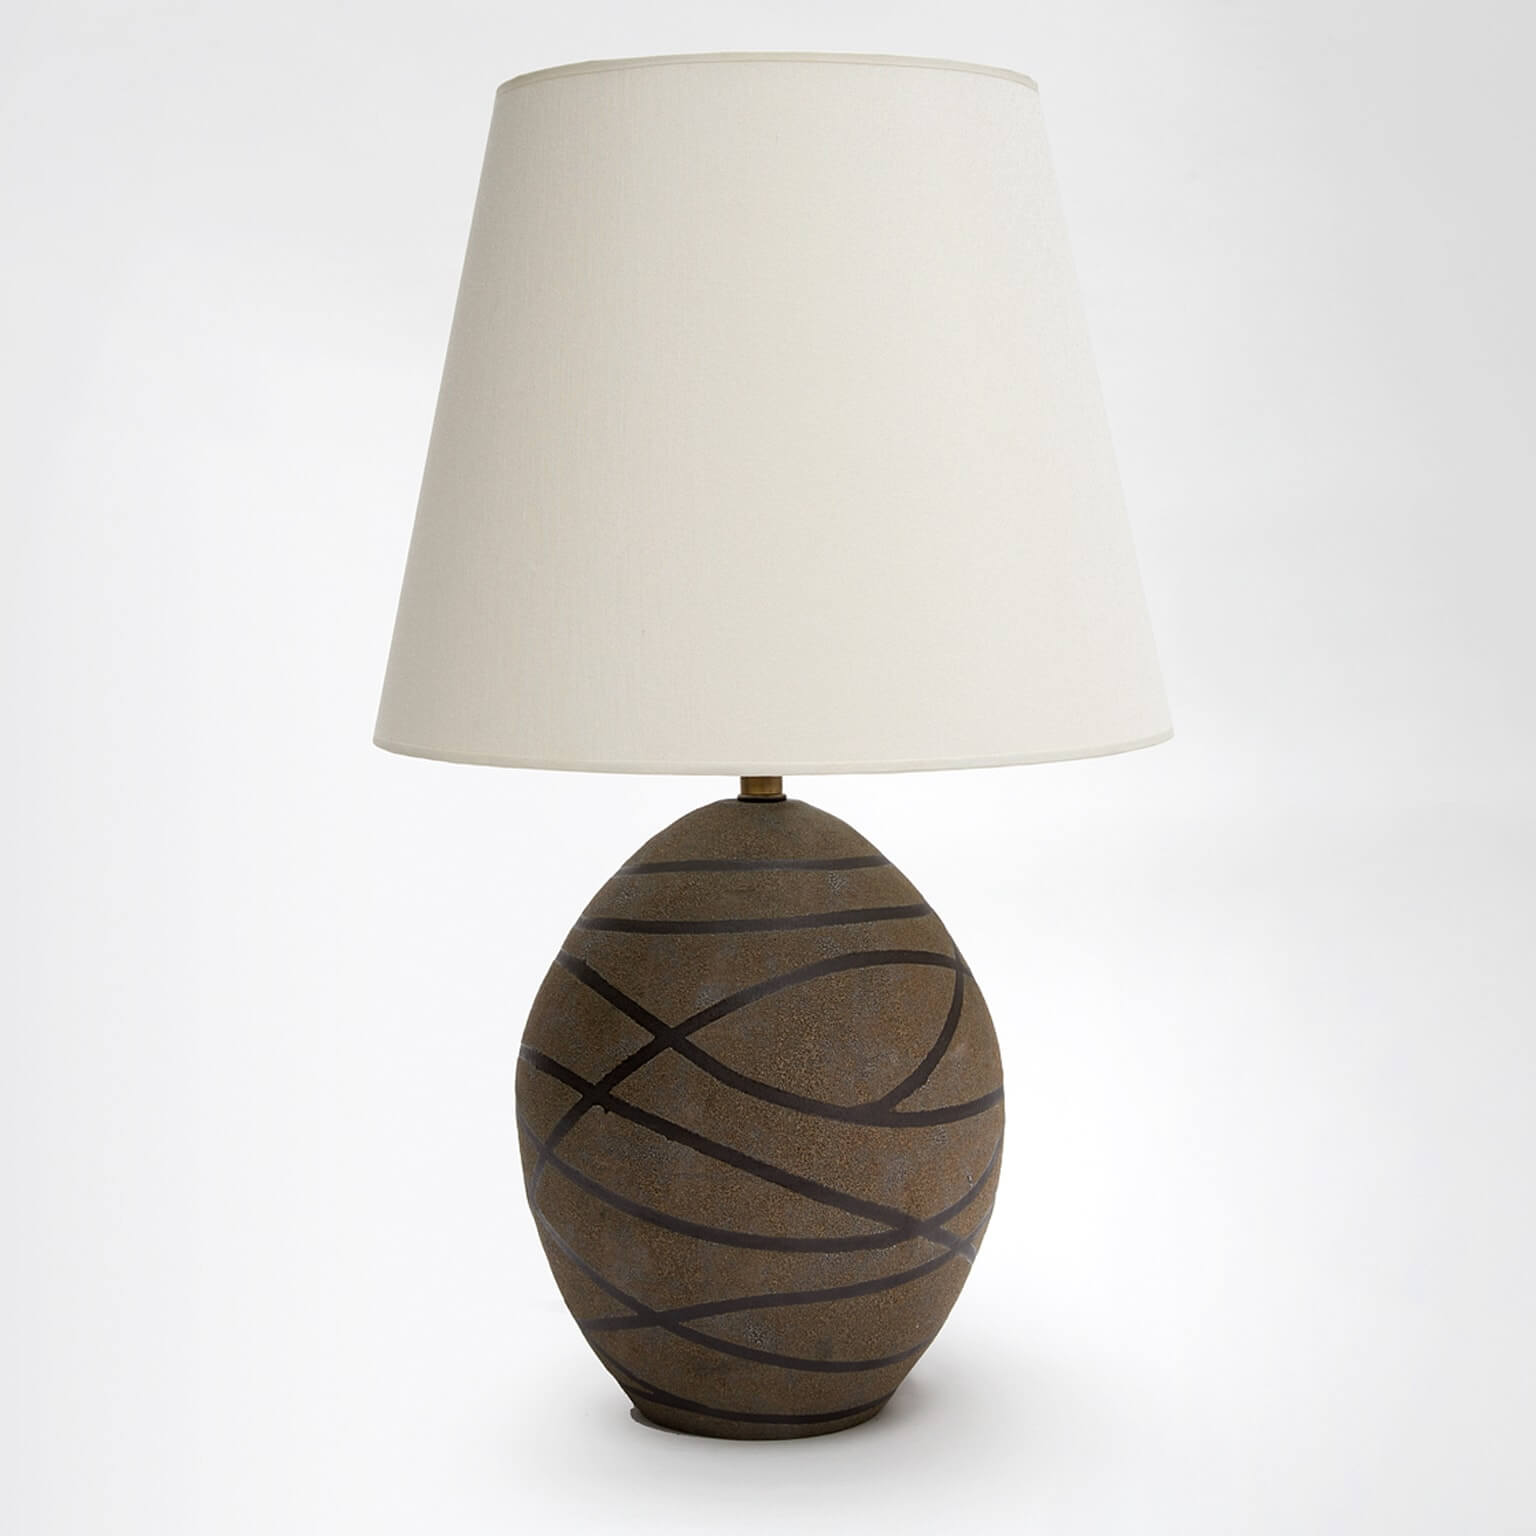 Home products lighting trans luxetrans luxe custom lighting and black stripes ceramic glazed matte texture oval aloadofball Gallery